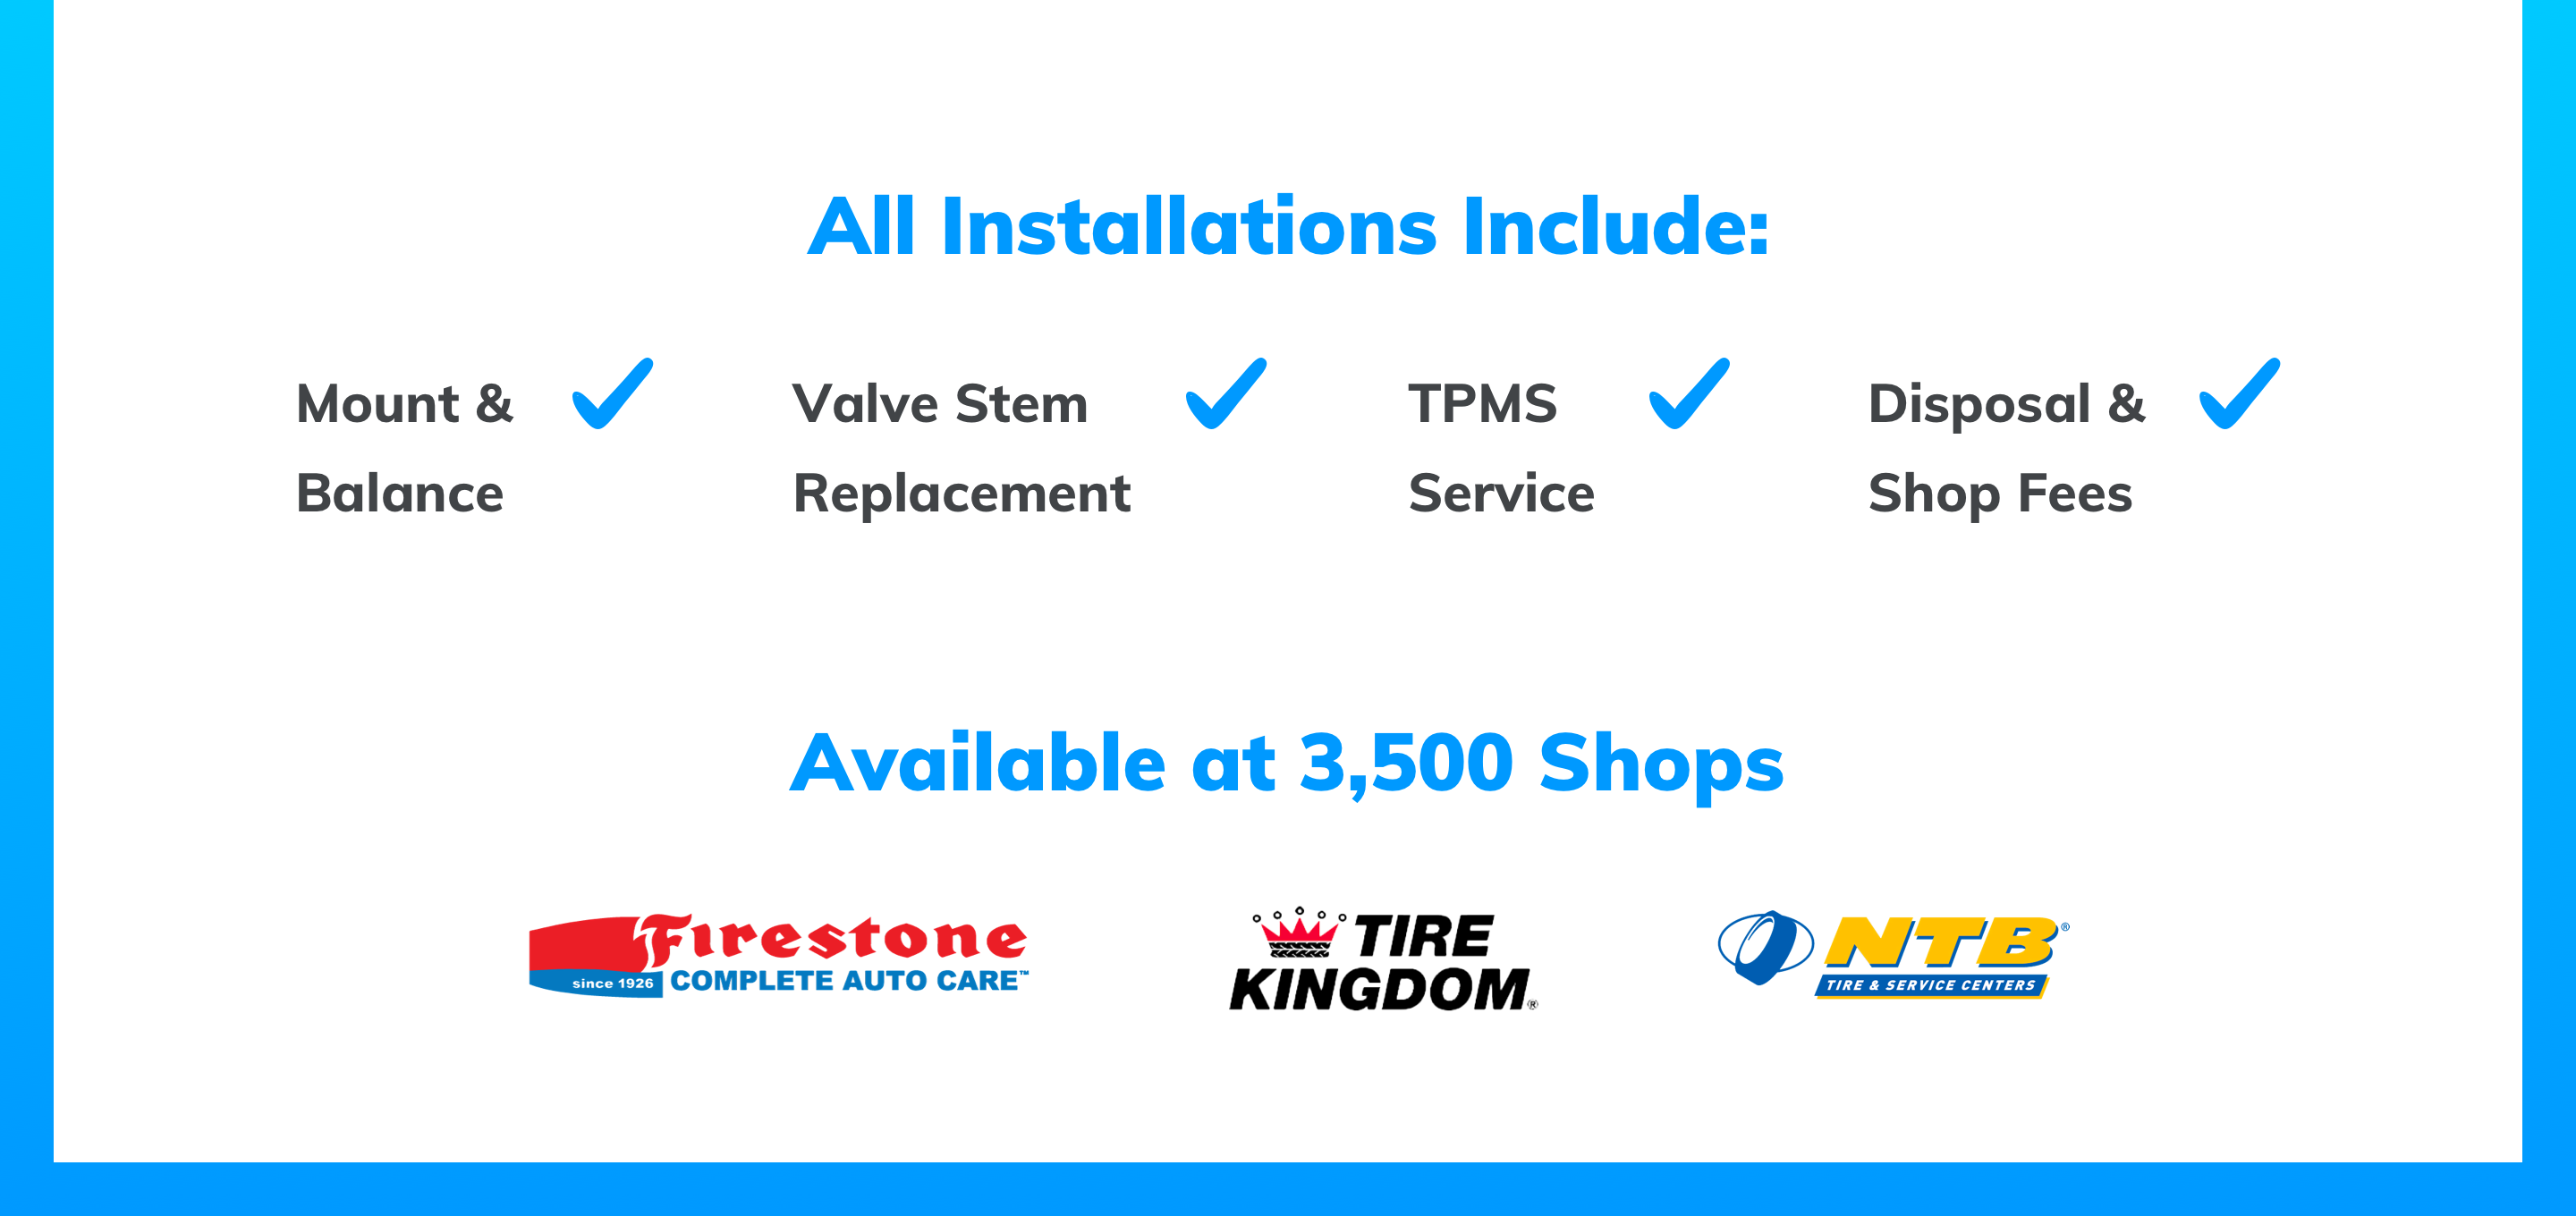 All installations include: Installation, Mount/Balance, TPMS and Disposal